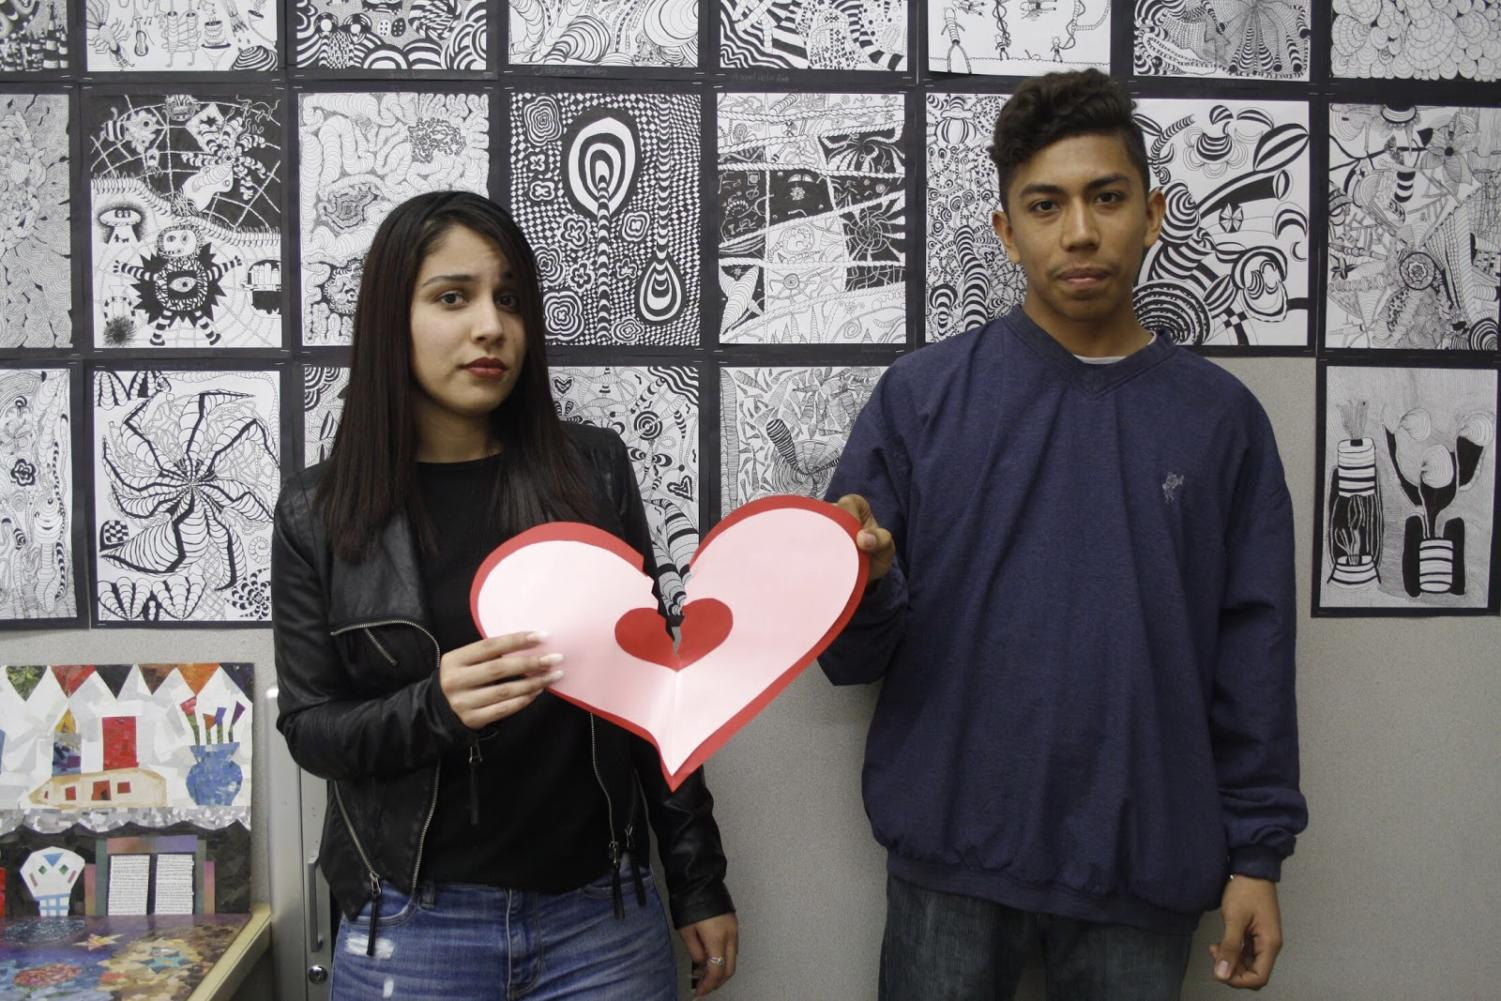 Joanna Luna and Raul Saldana are not convinced Valentine's Day is that great.